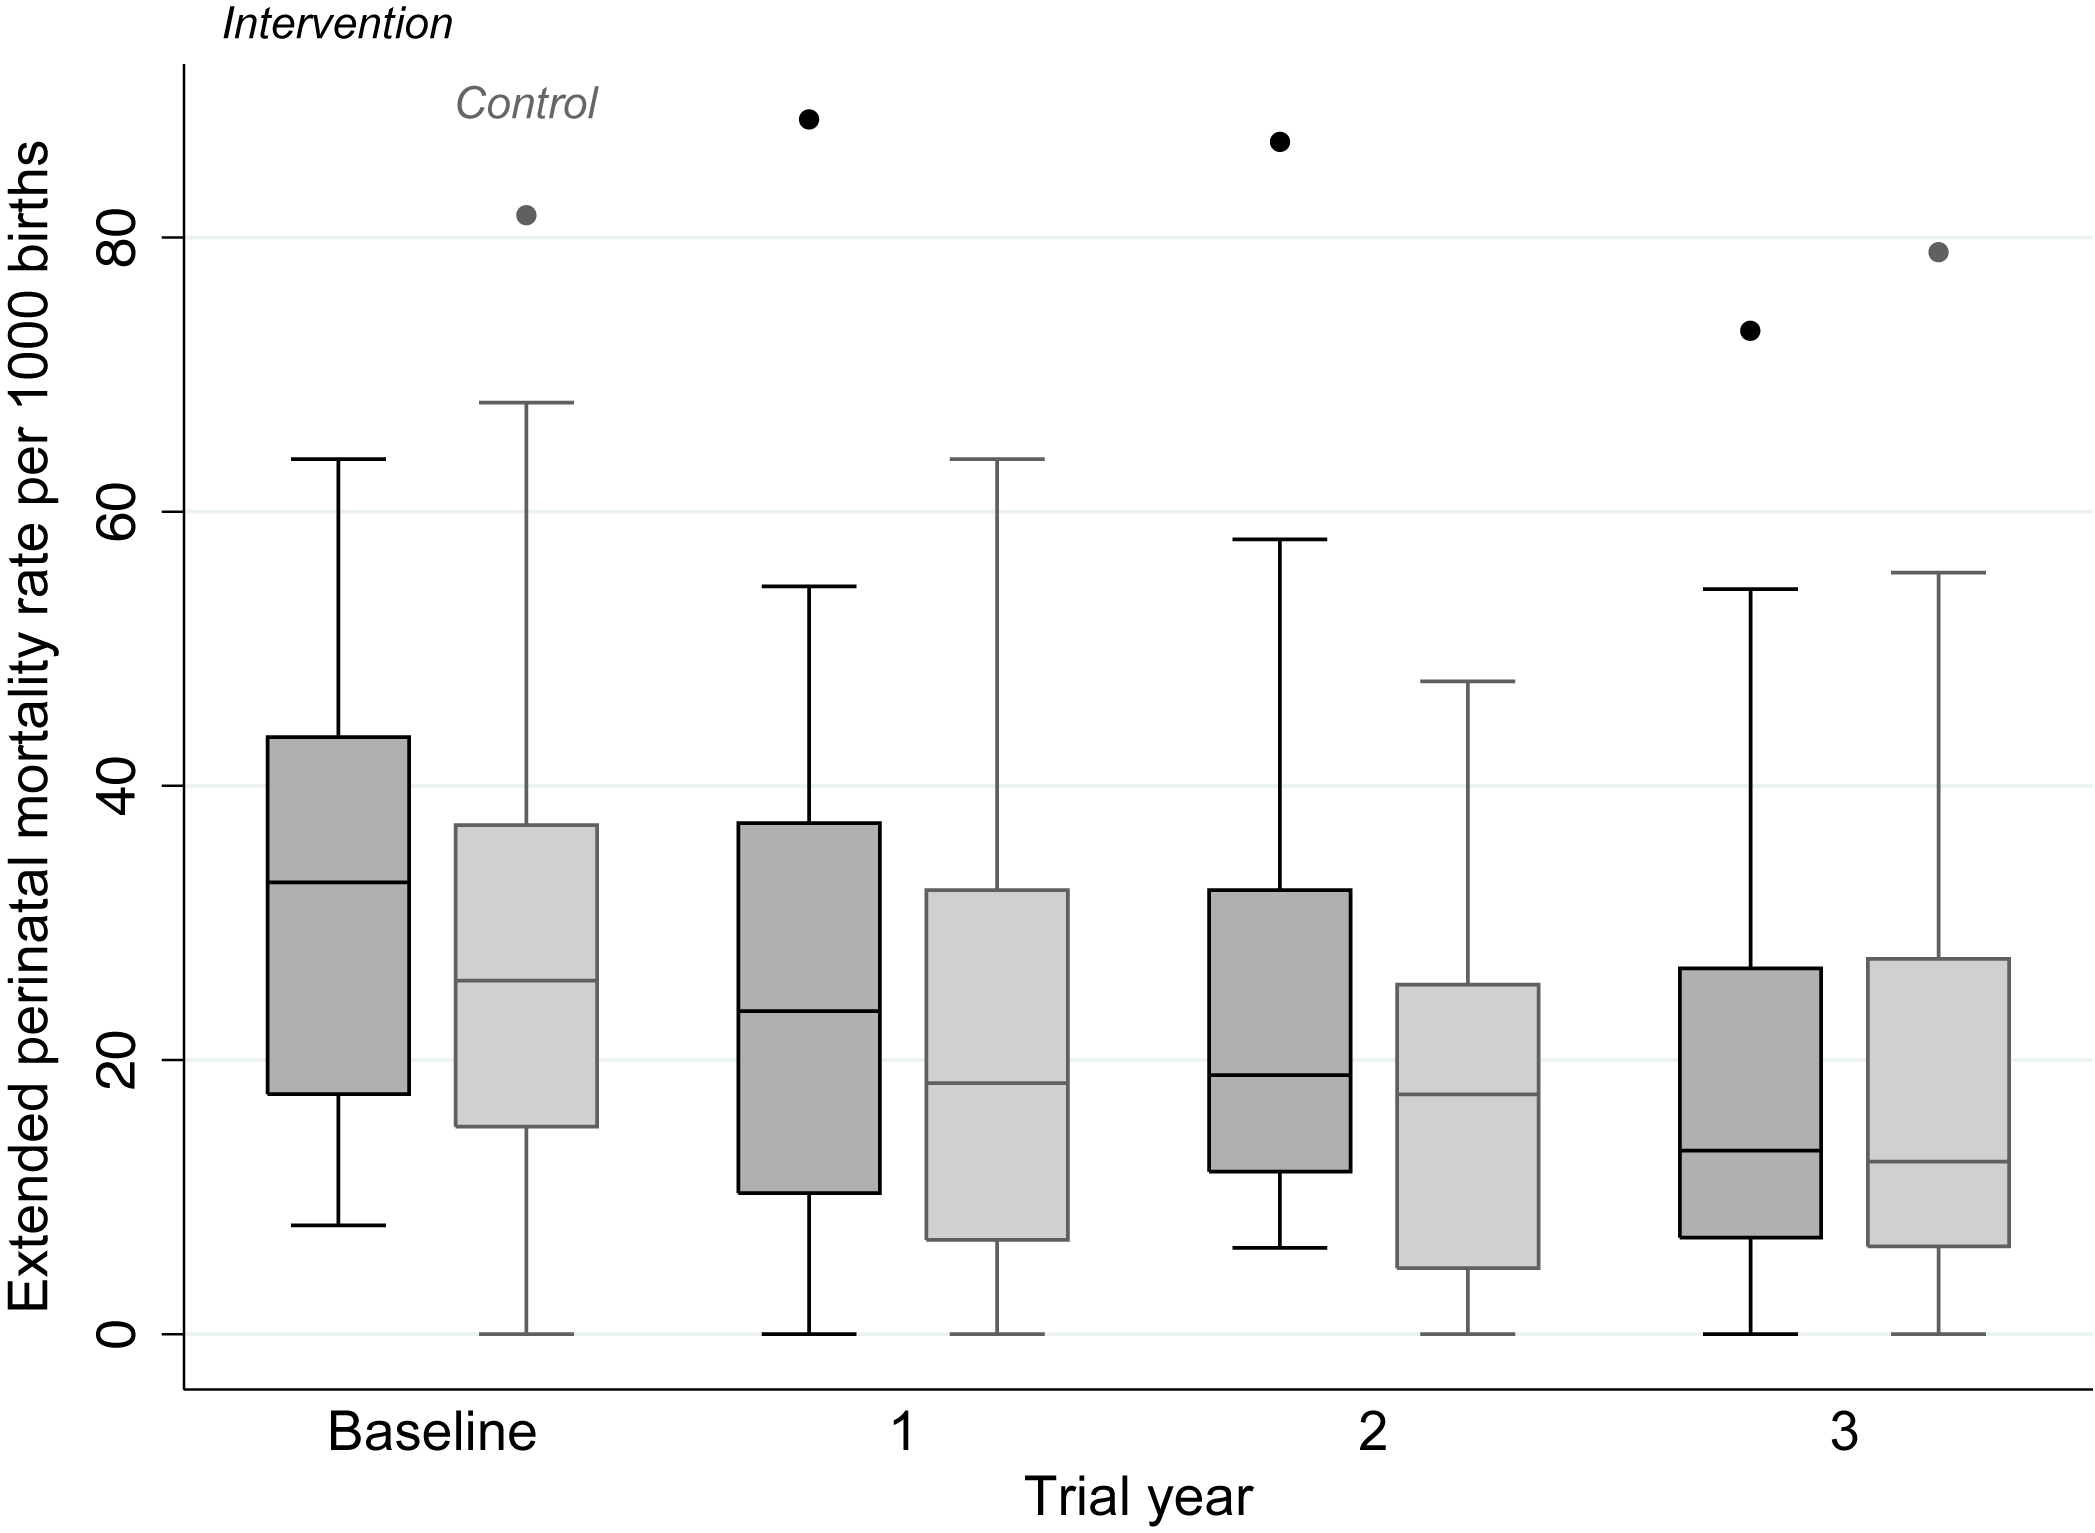 Extended perinatal mortality rate in each allocation group, by trial year.